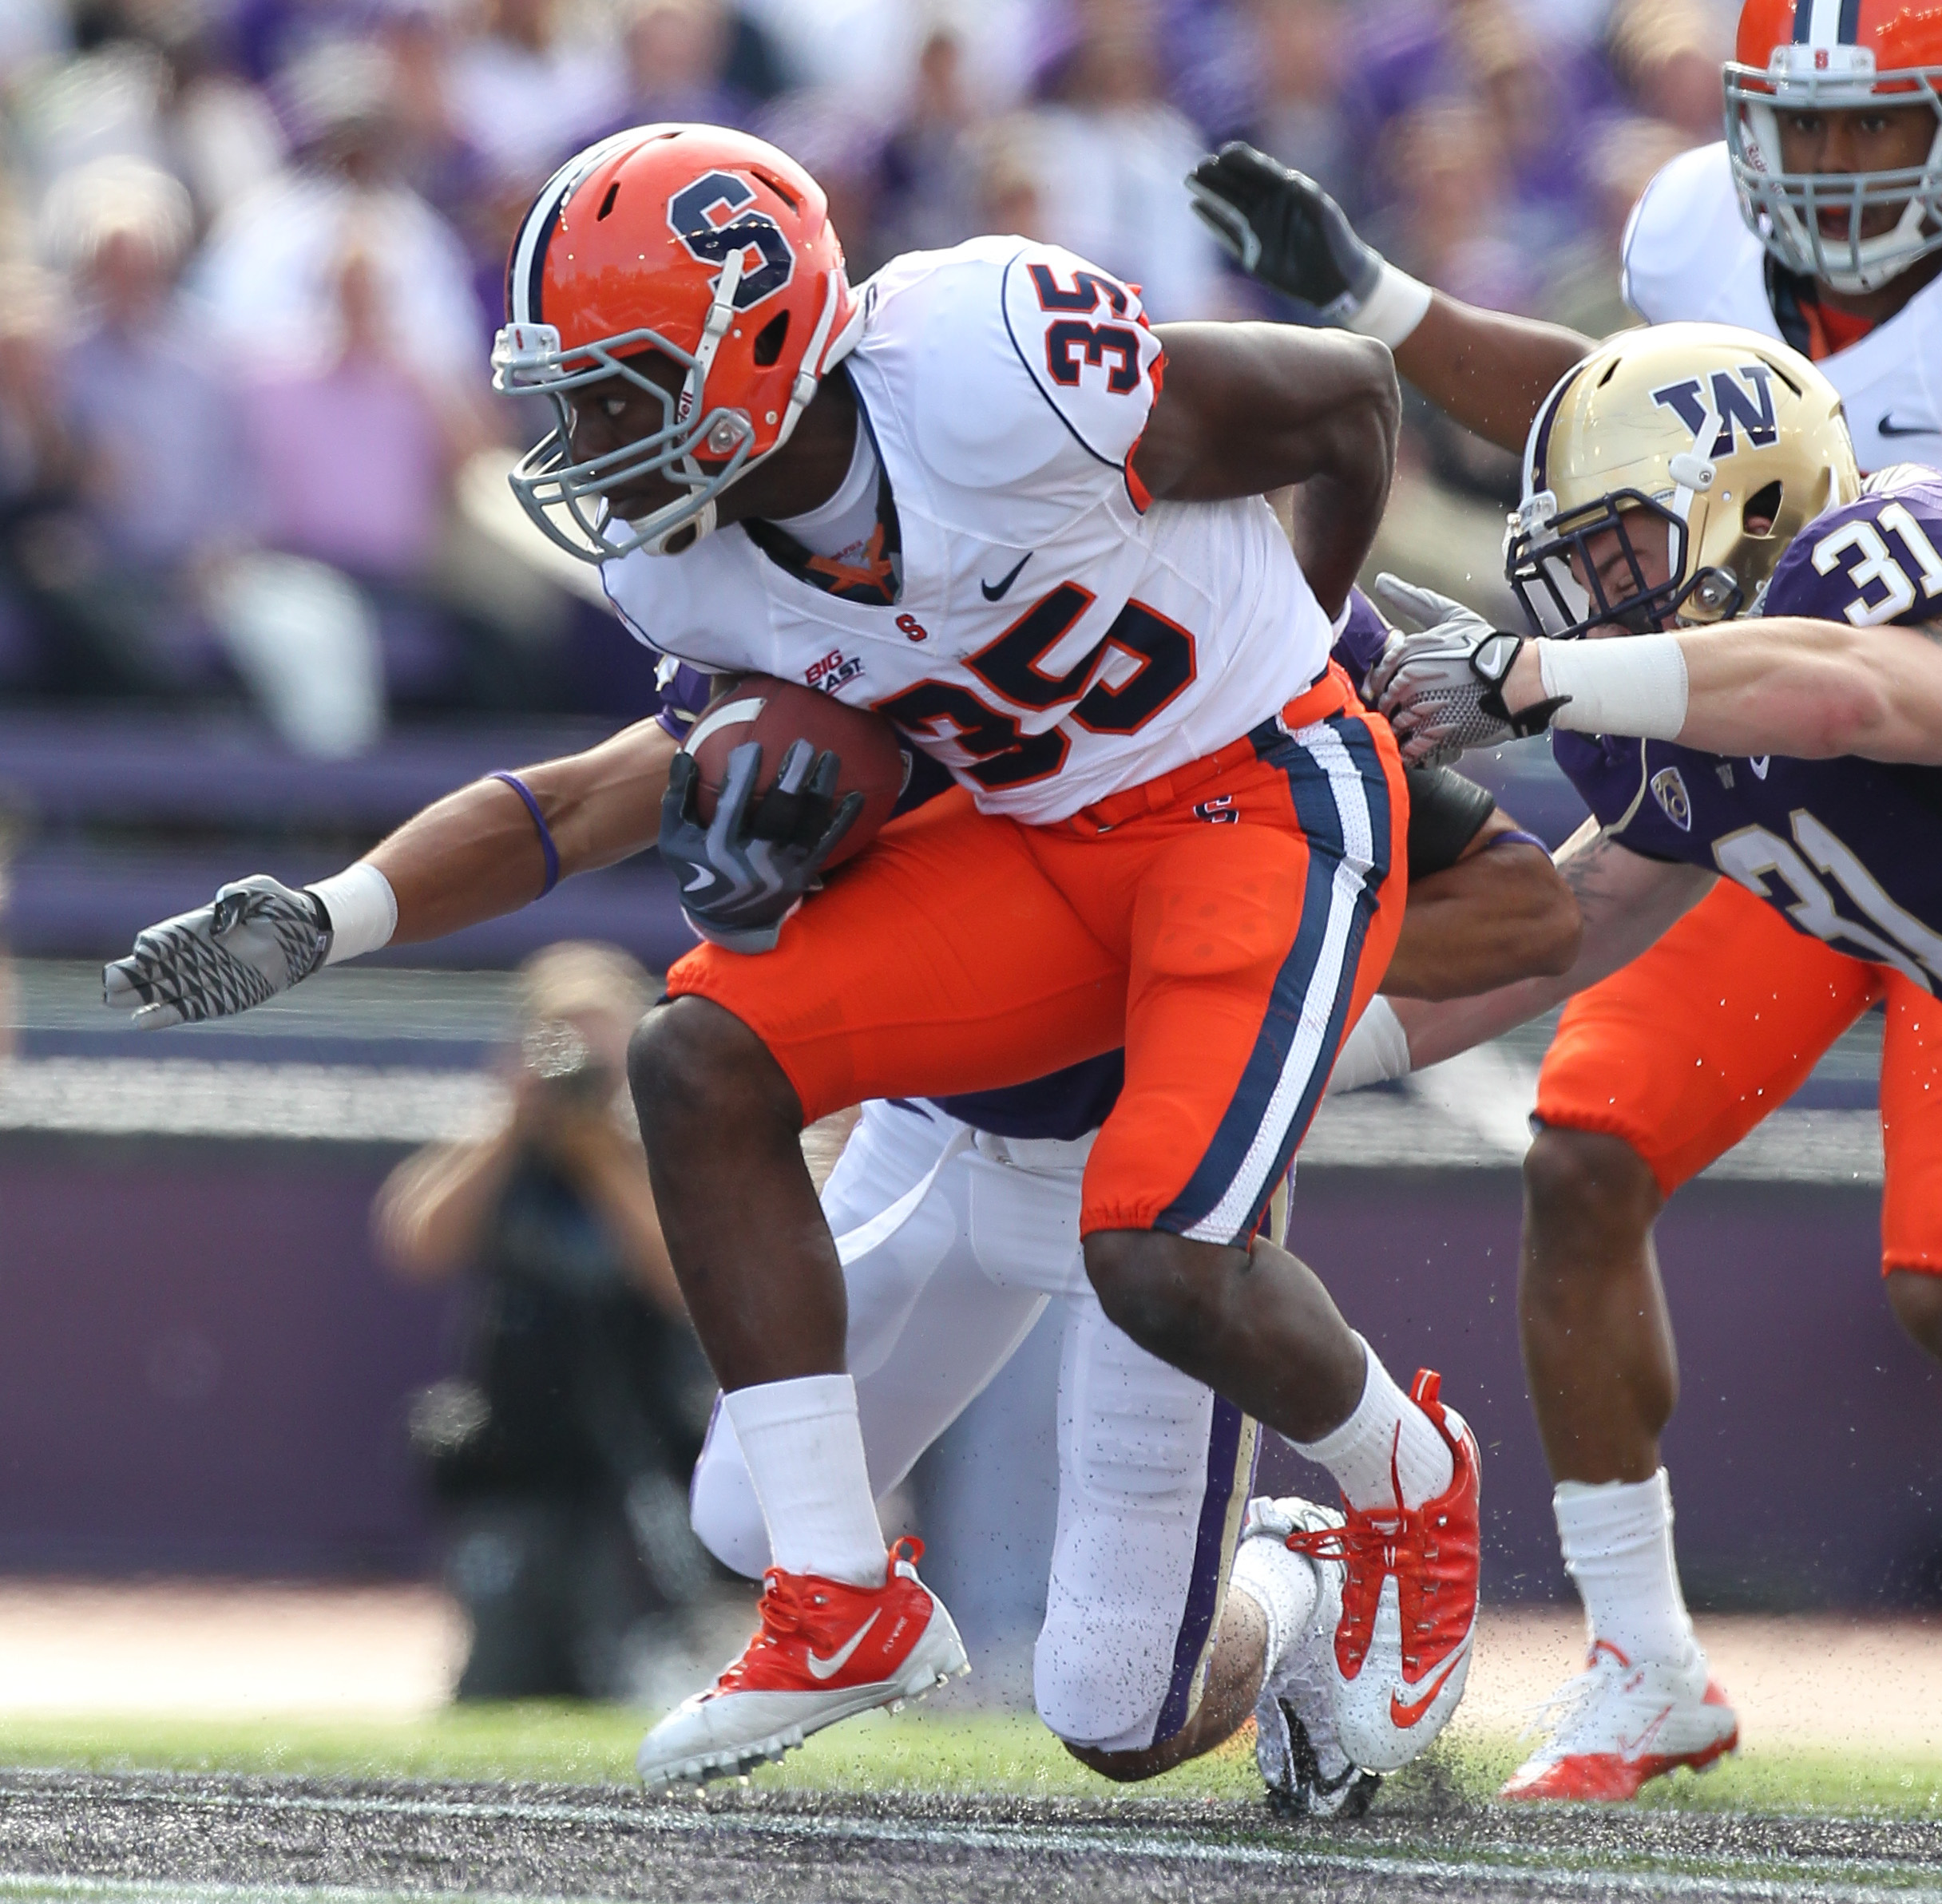 SEATTLE - SEPTEMBER 11:  Mike Holmes #35 of the Syracuse Orange rushes against Cort Dennison #31 of the Washington Huskies on September 11, 2010 at Husky Stadium in Seattle, Washington. (Photo by Otto Greule Jr/Getty Images)